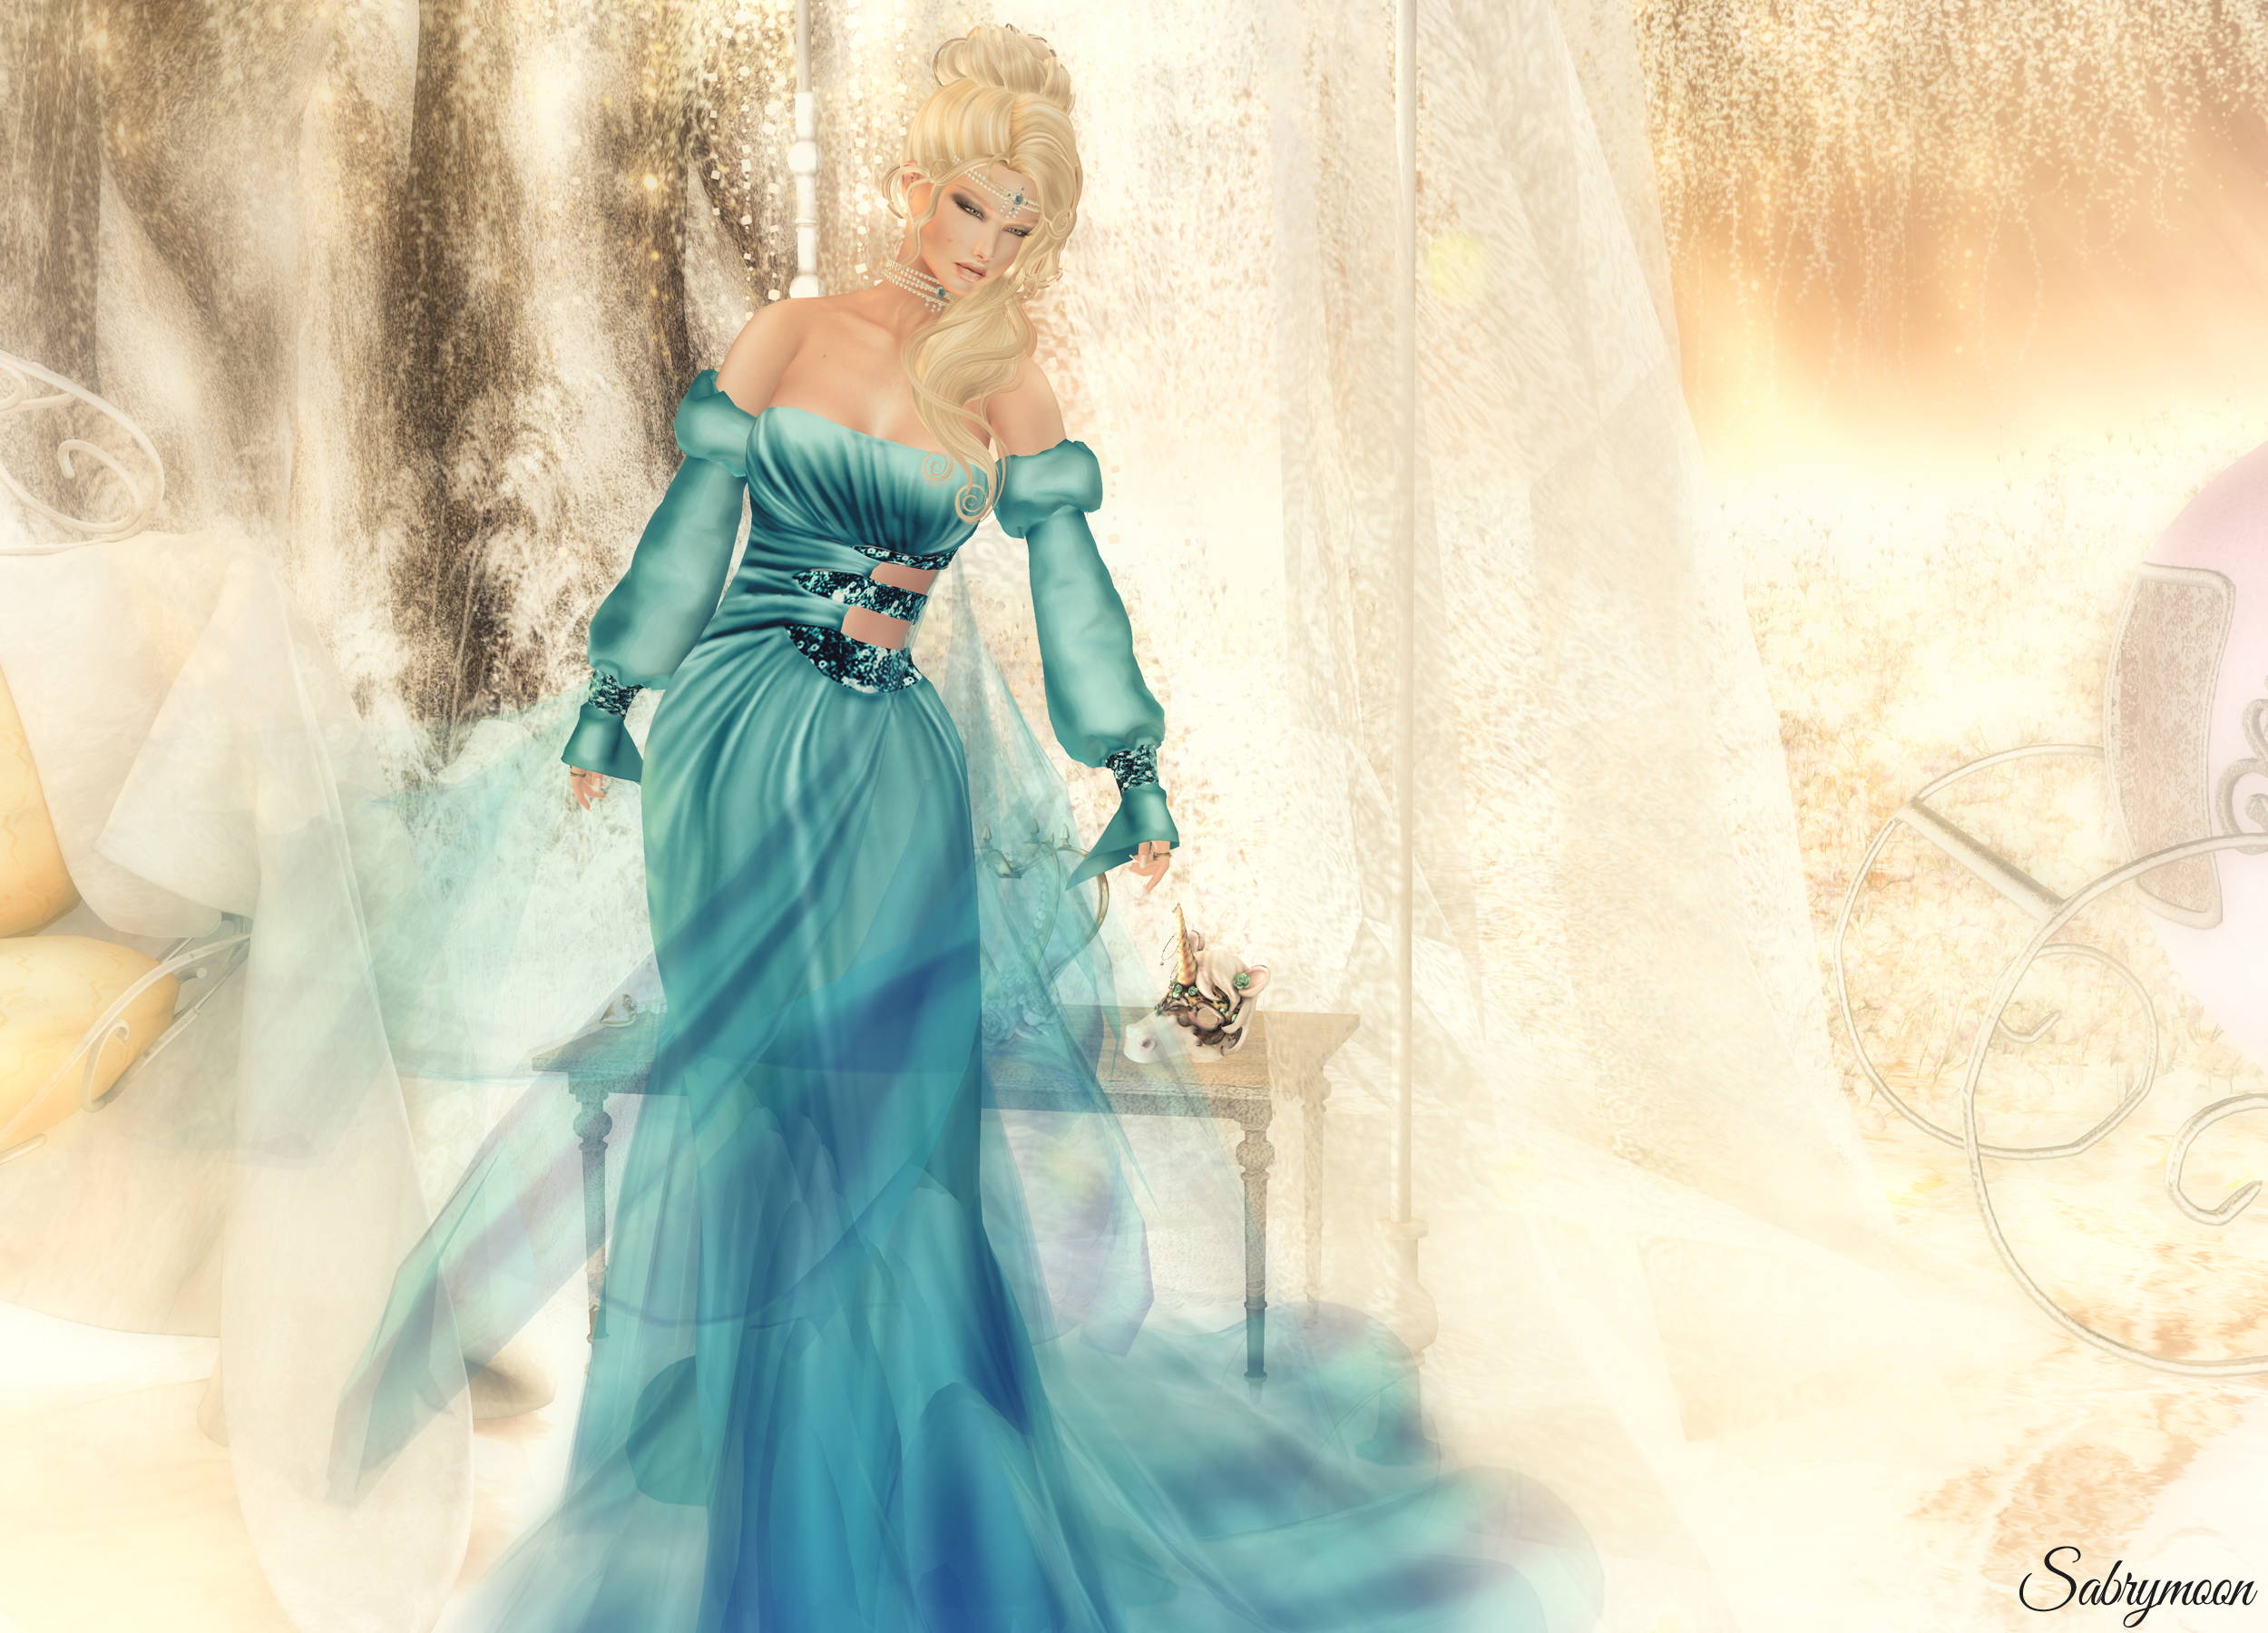 Sabrymoon wearing -AZUL- Maile Aqua Dress Exile First Dance Hair LW: Poses Do not Judge pose